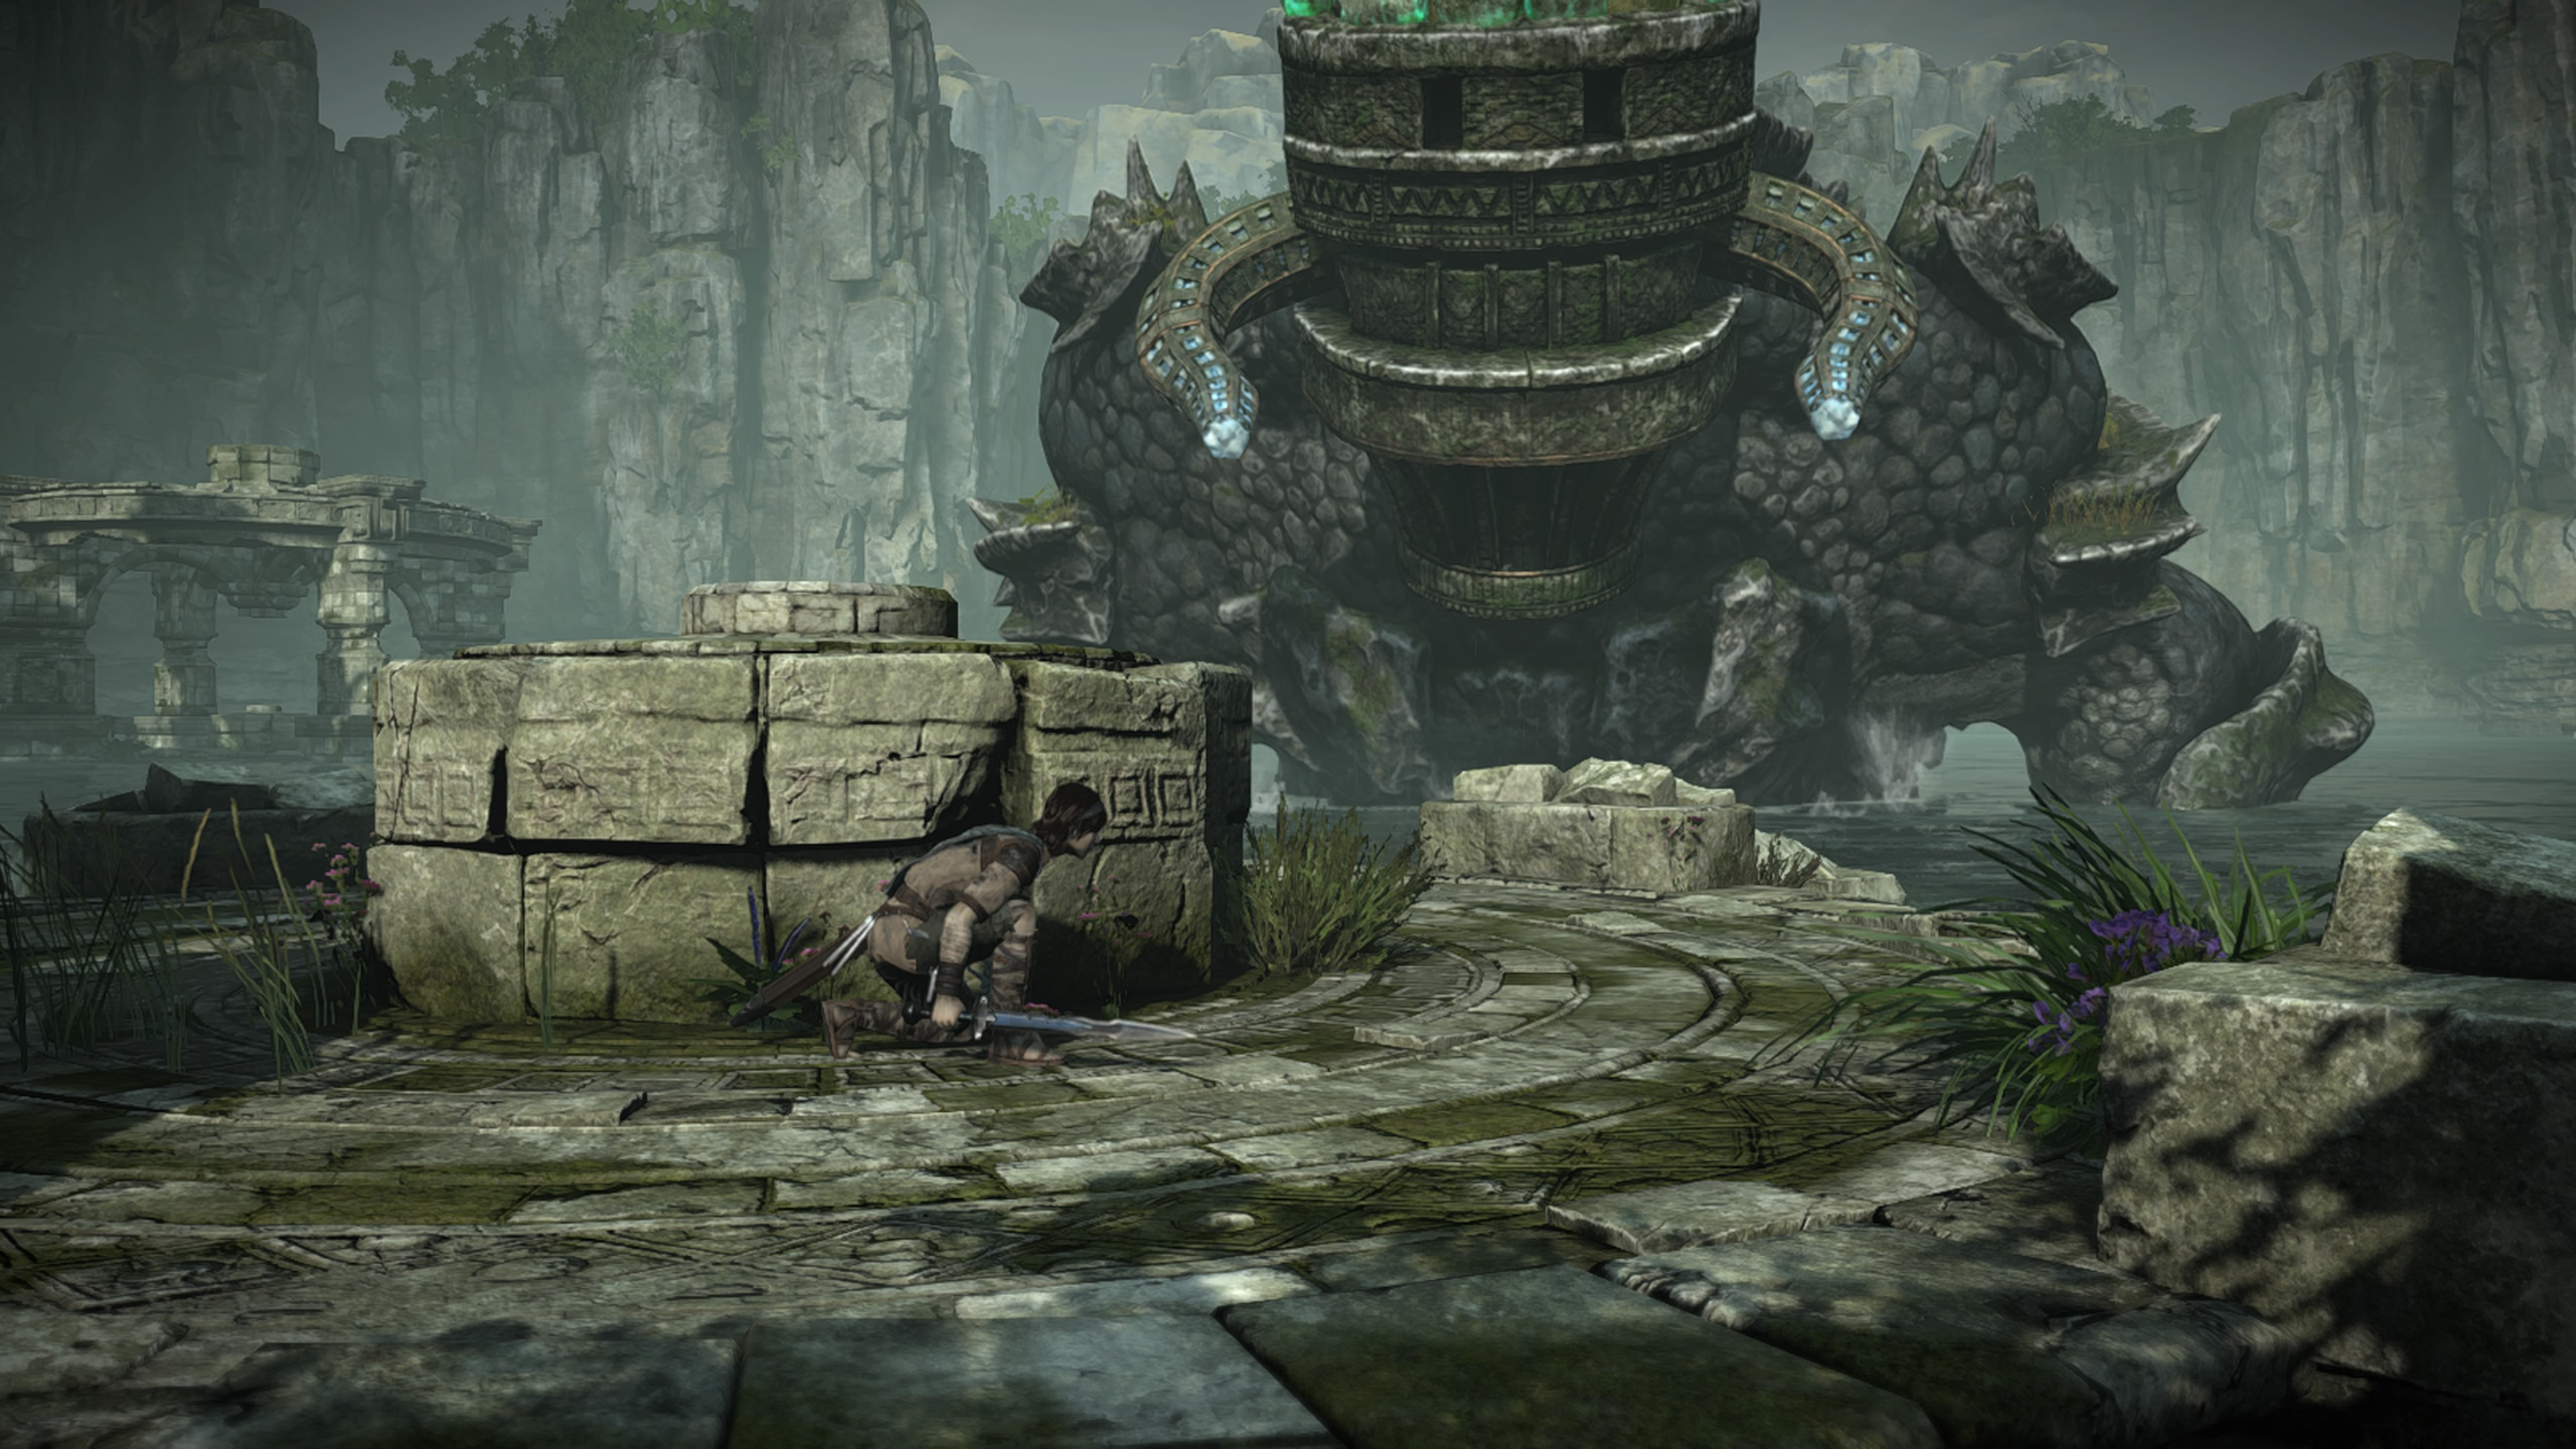 shadow_of_the_colossus_20180204231539.jpg